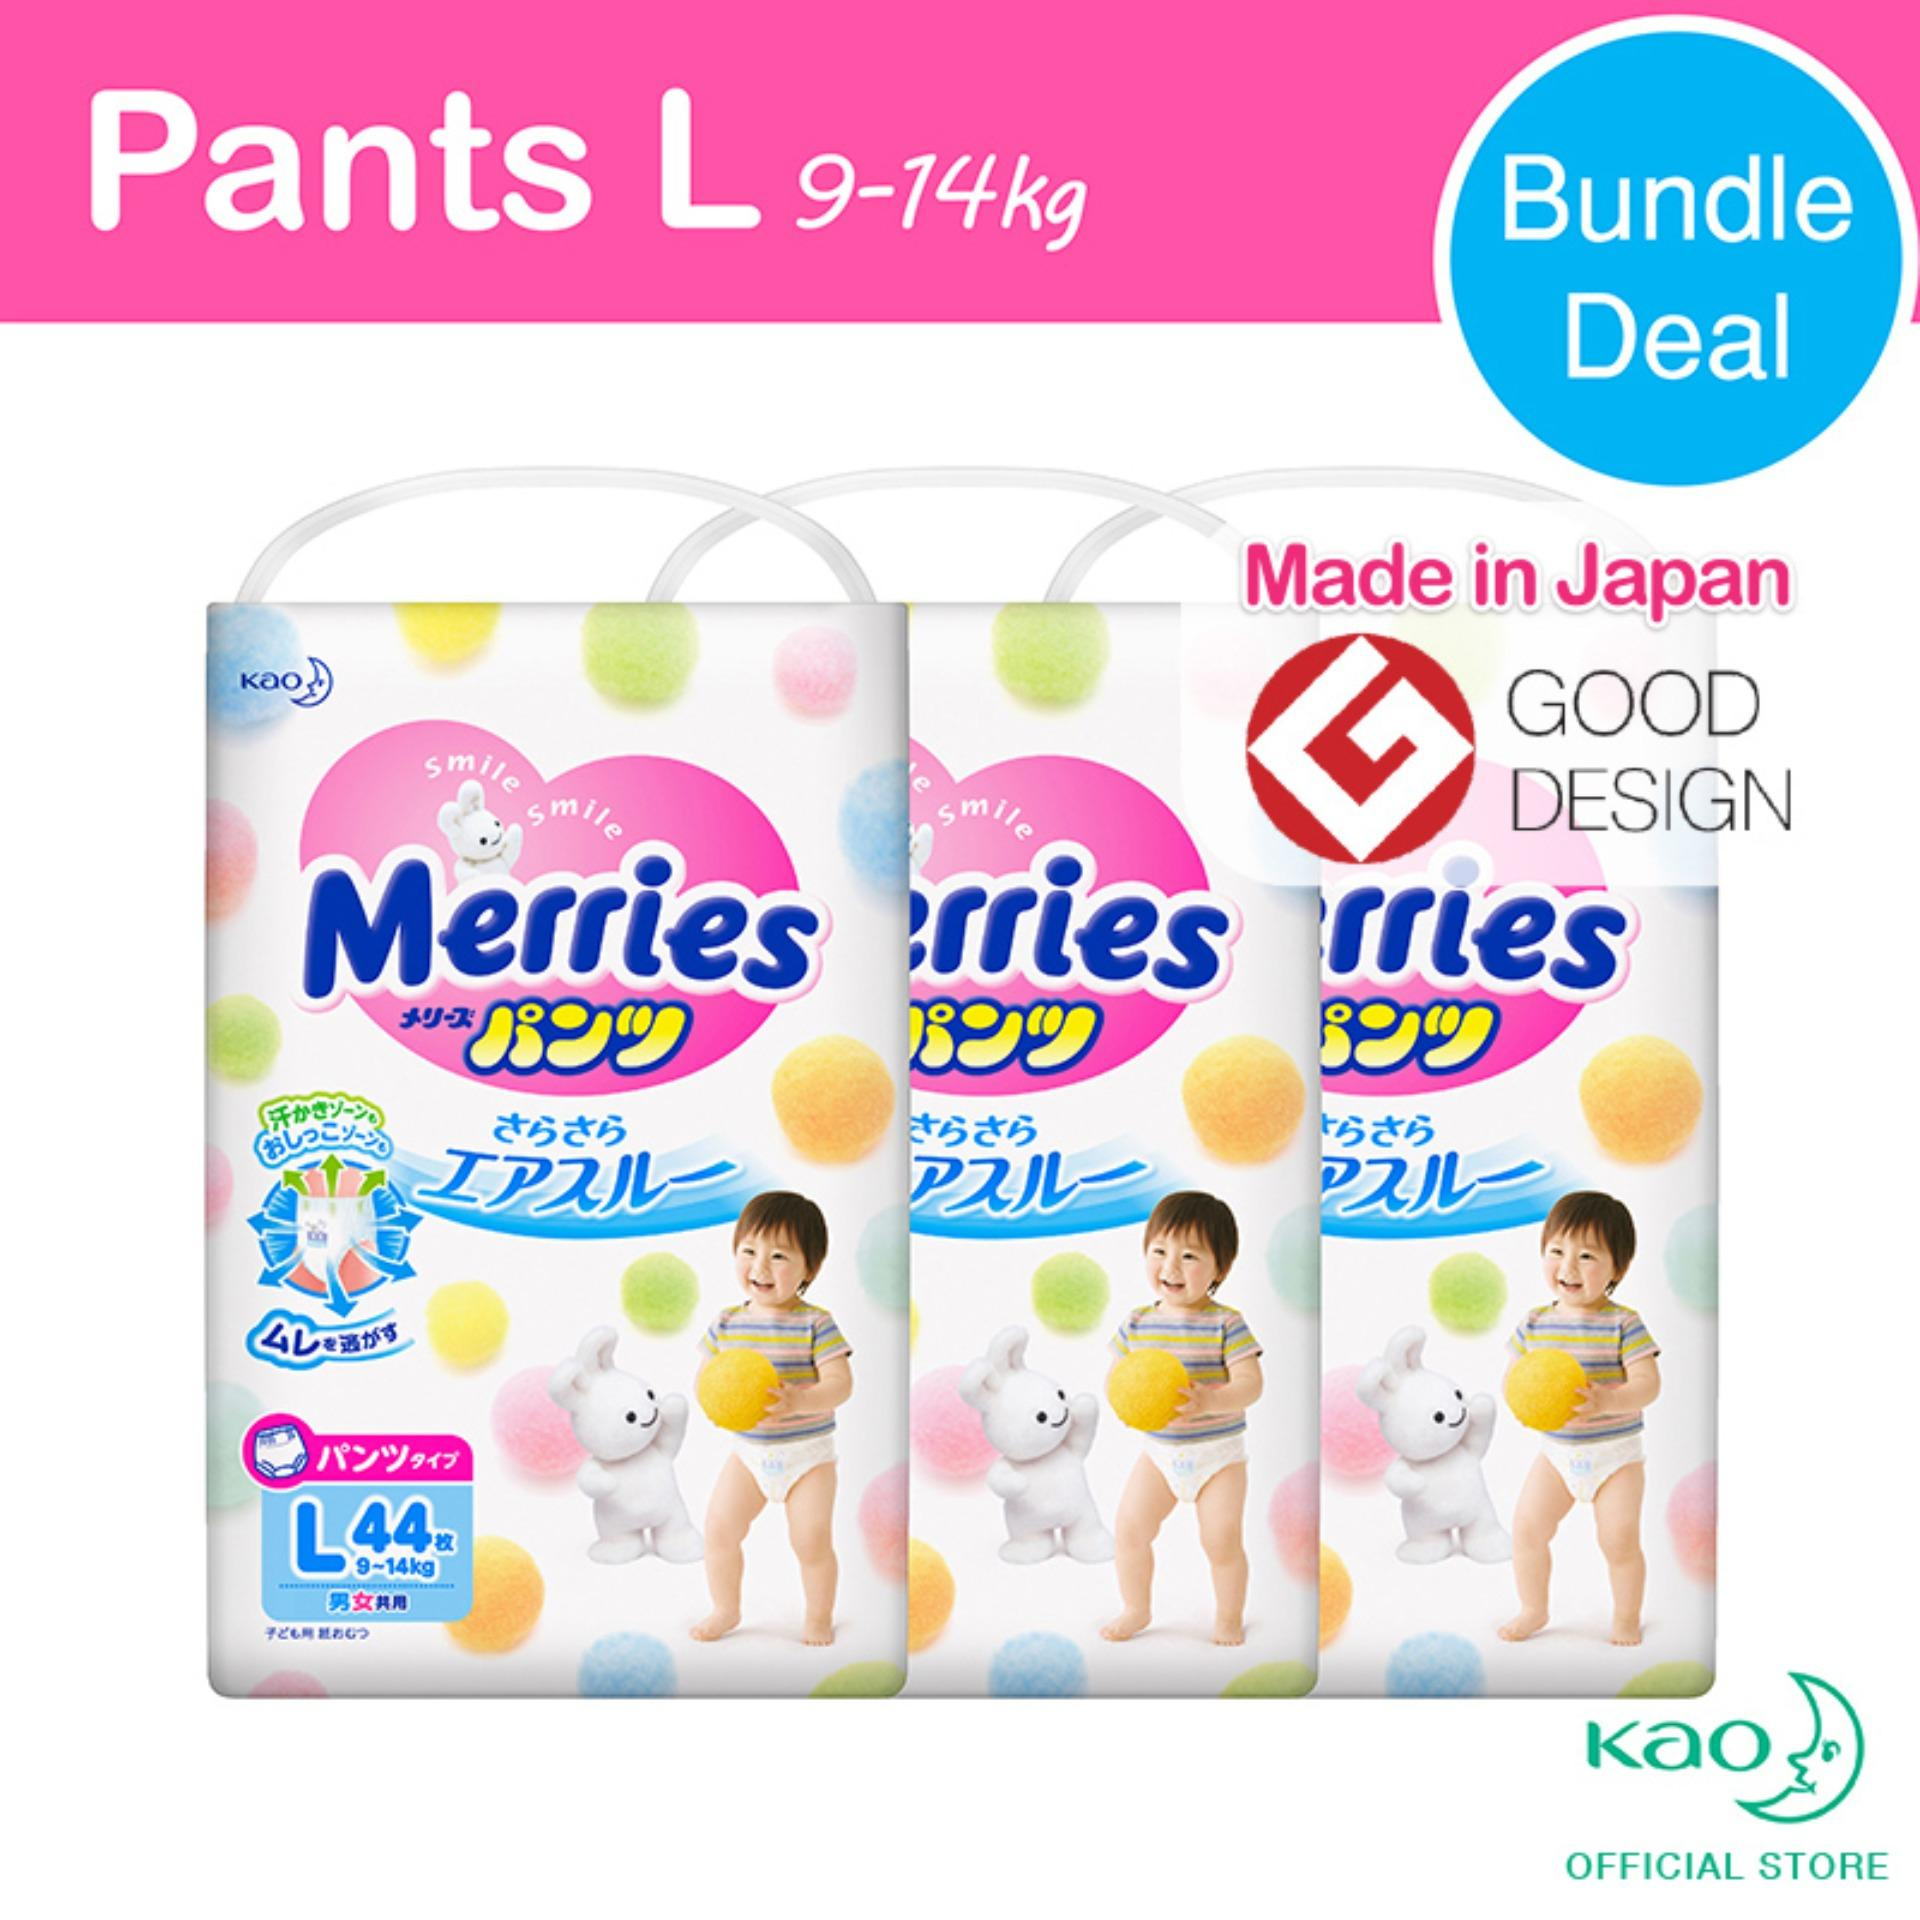 Merries Walker Pants Super Jumbo L44S X 3 Packs 9 14 Kg Coupon Code